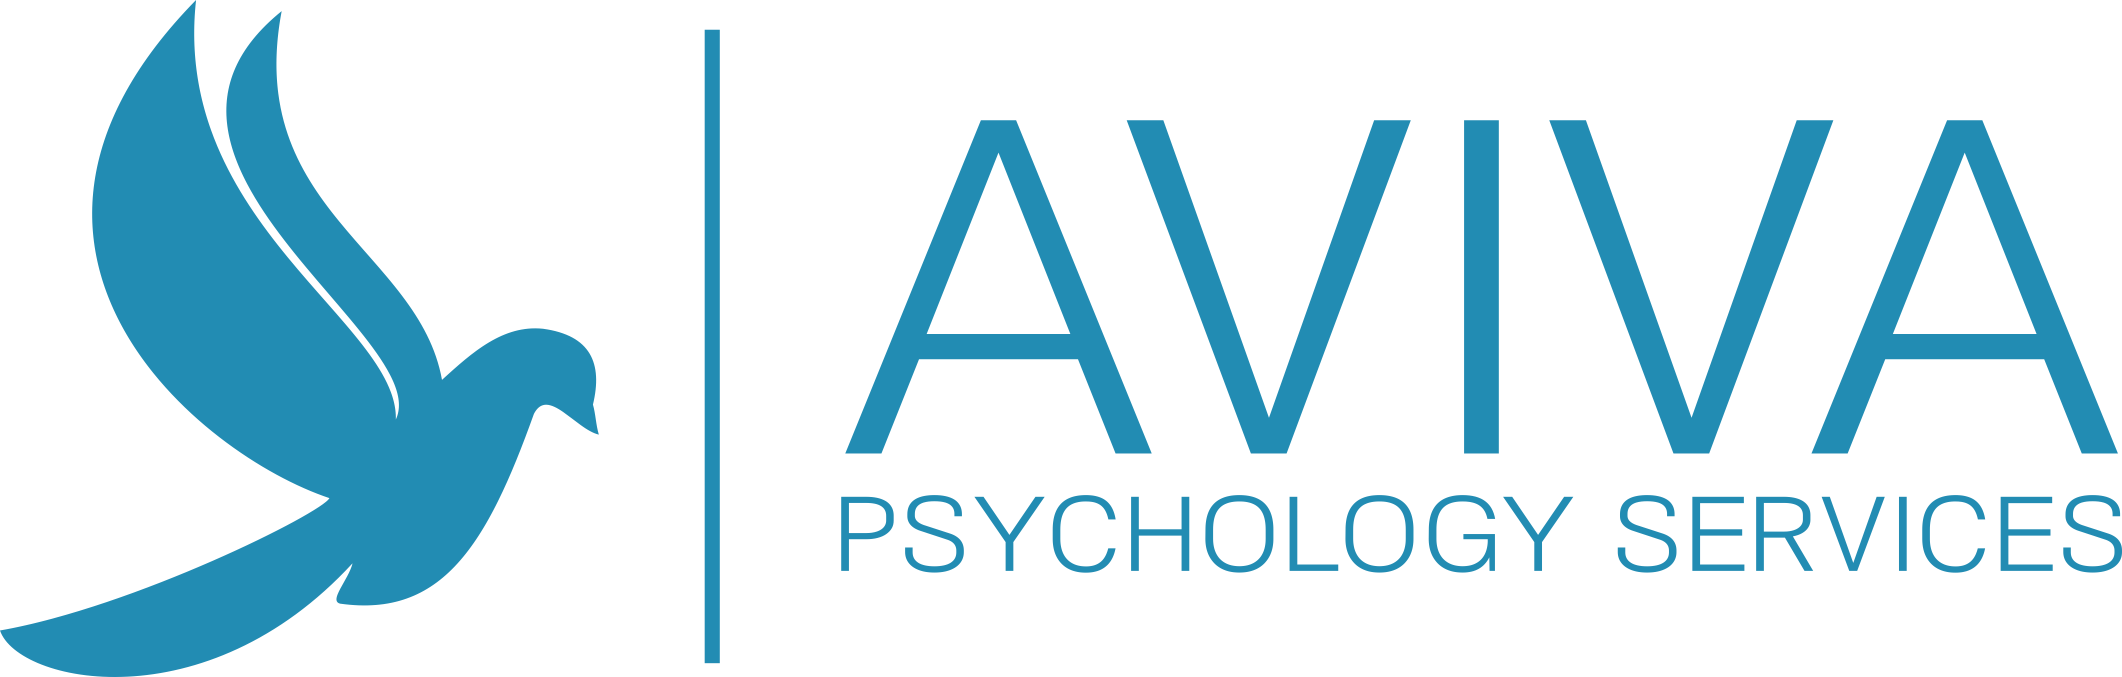 Psychotherapy practice needs a logo that communicates our vision.